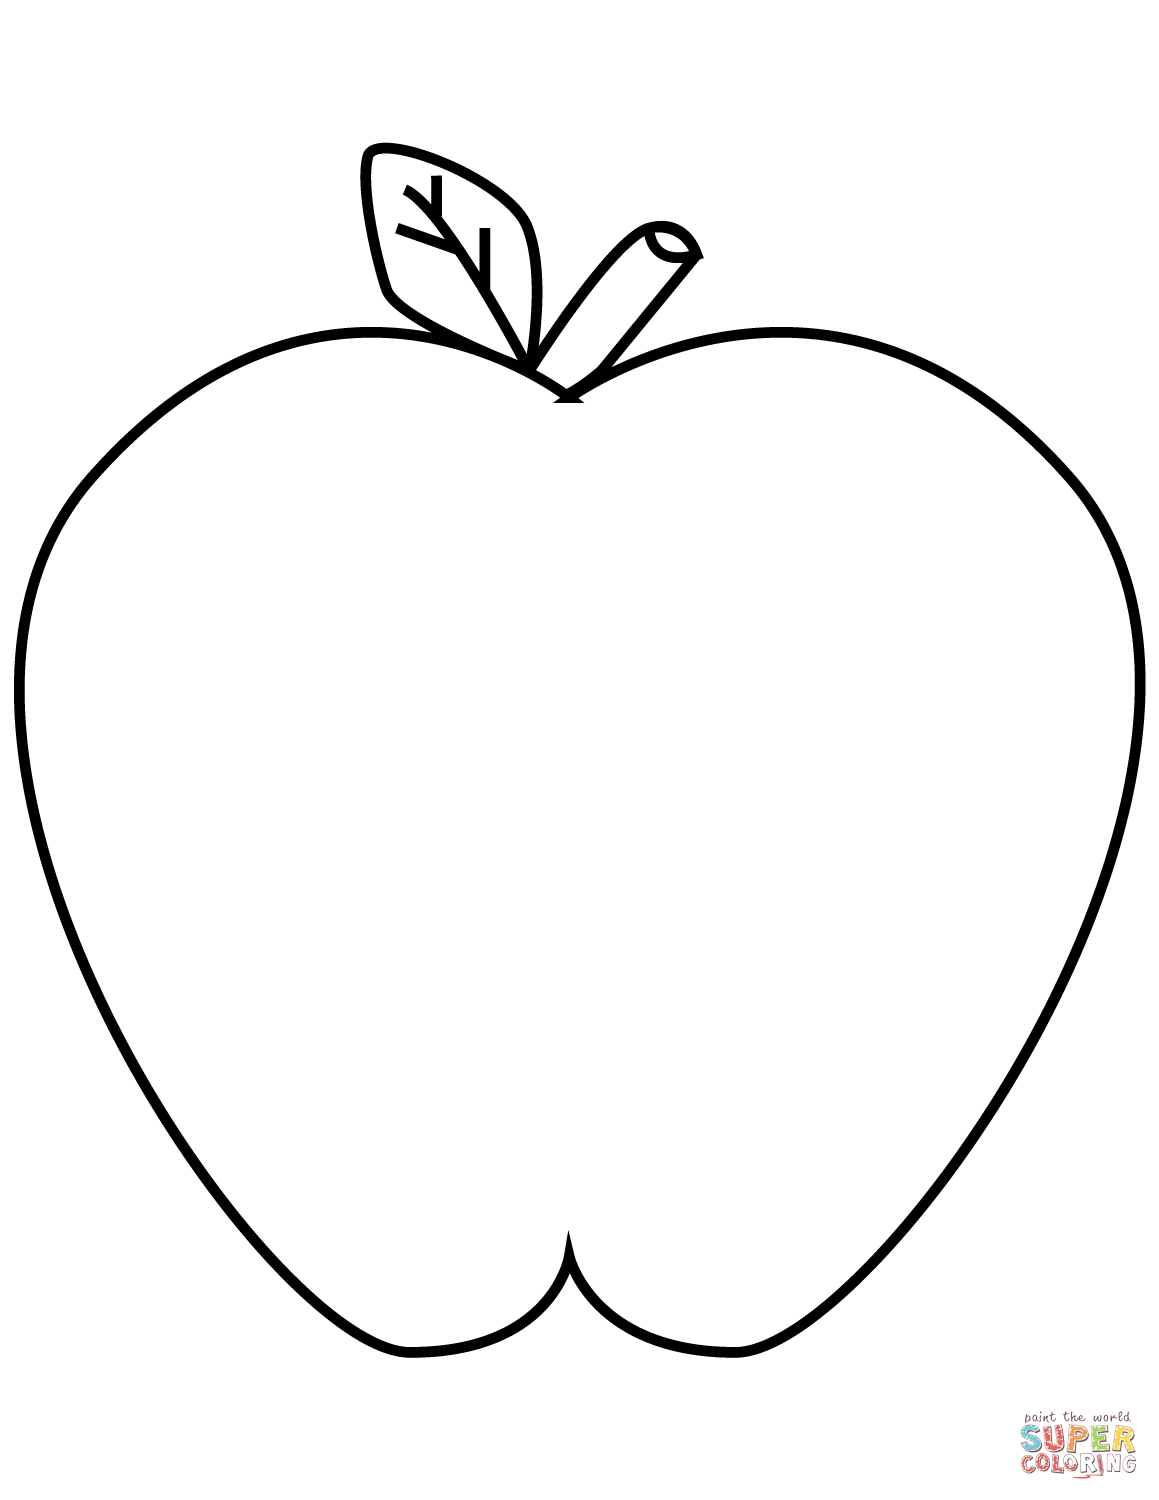 coloring image of an apple simple apple drawing free download on clipartmag of coloring apple an image